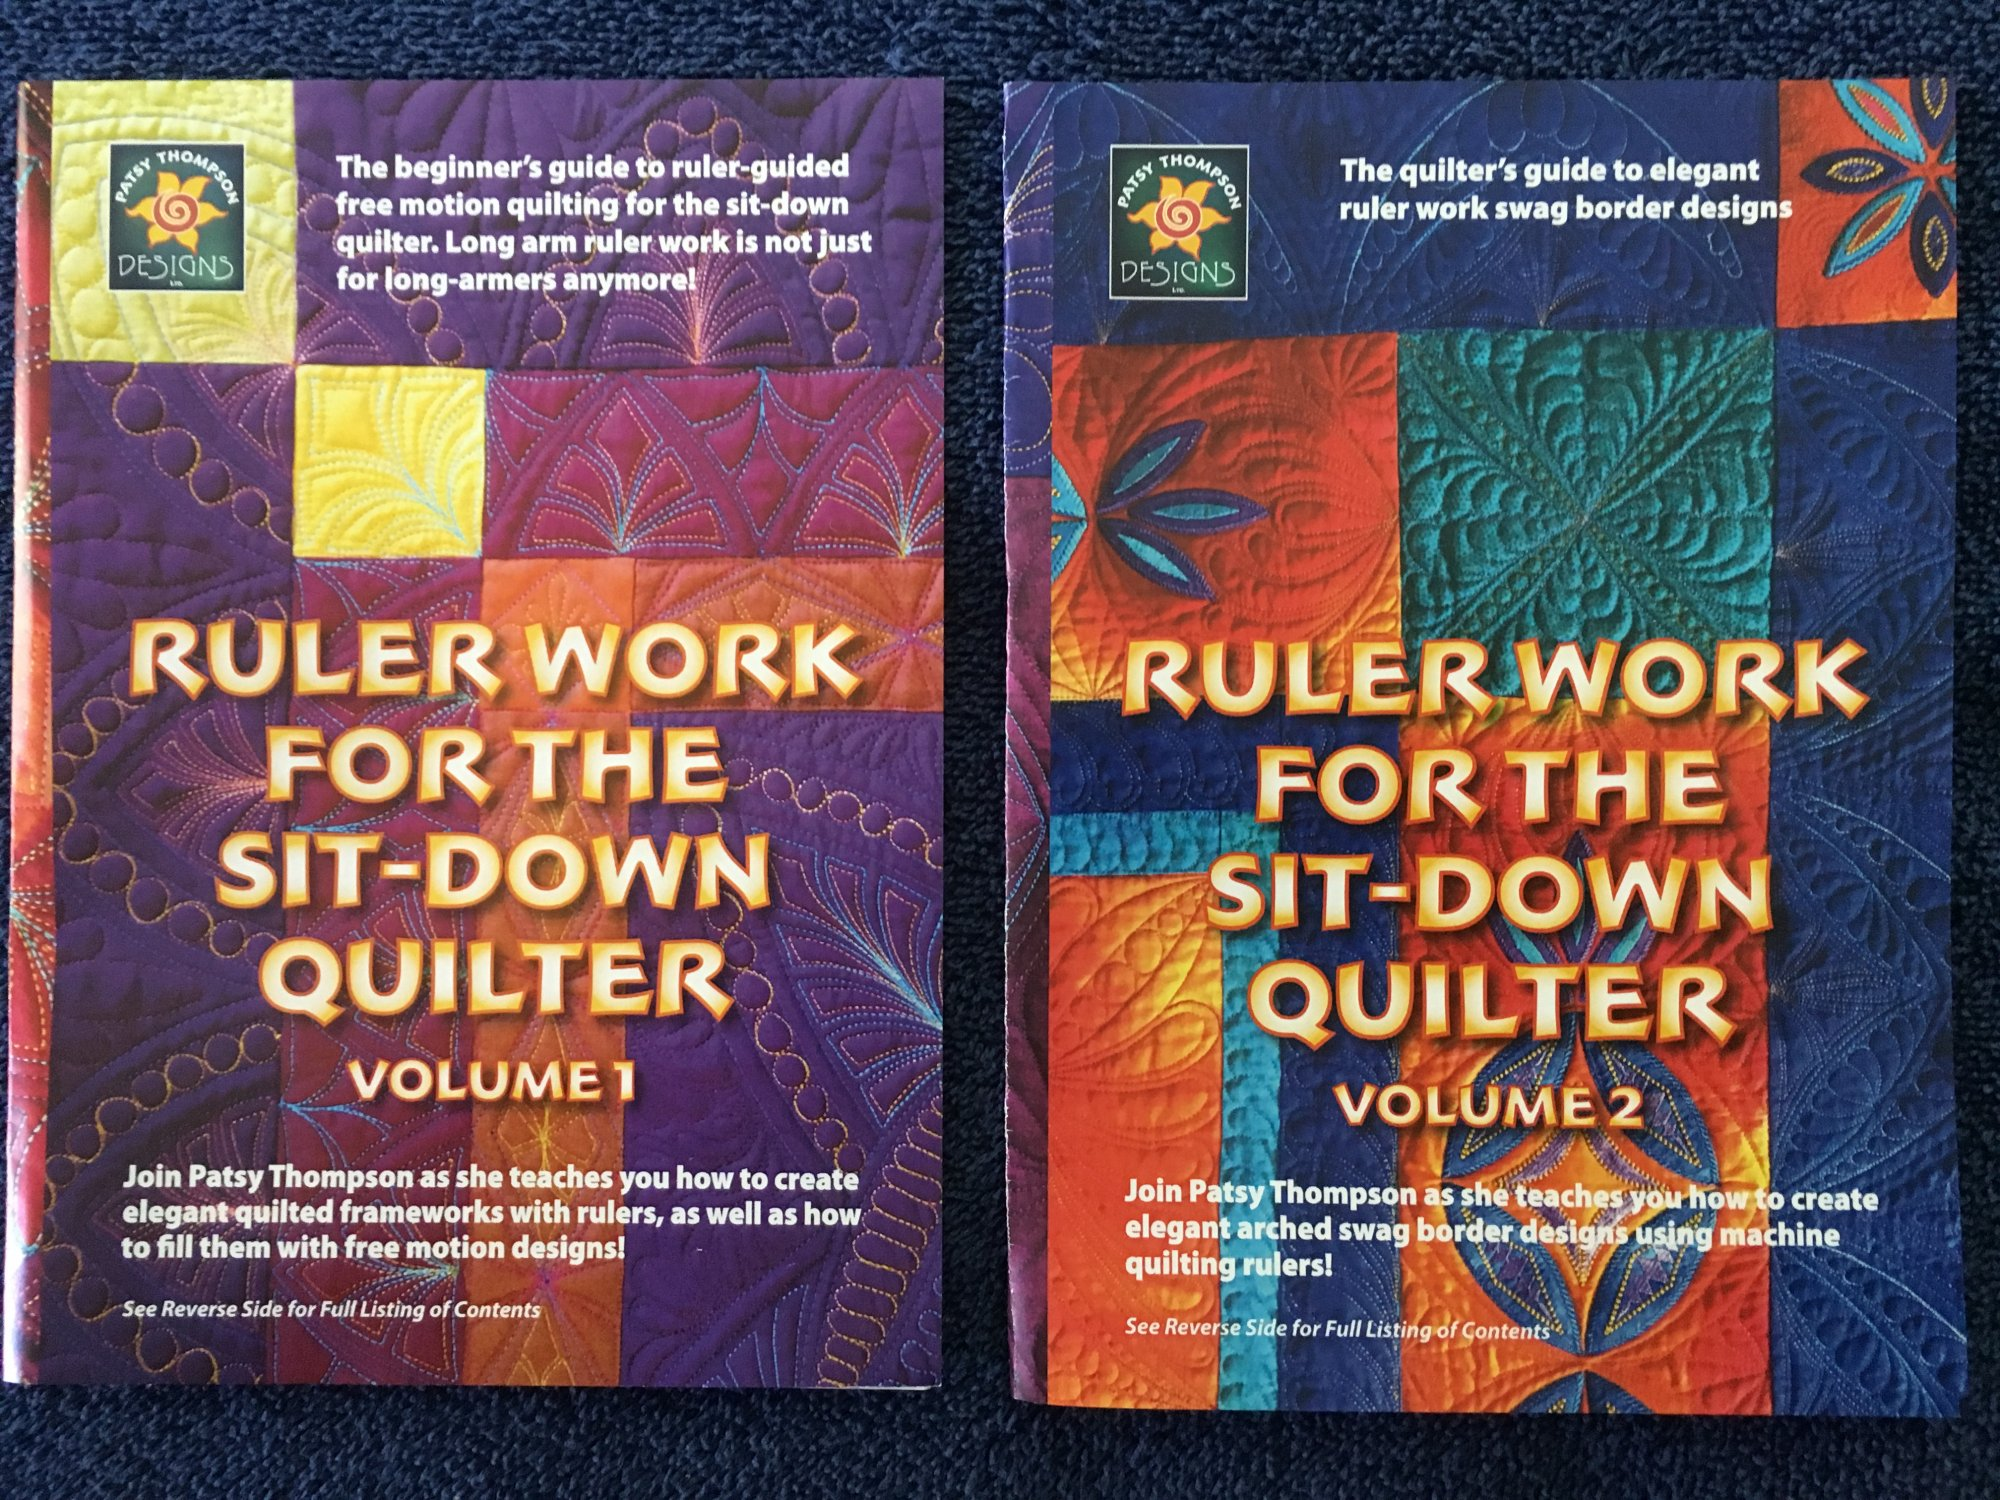 Ruler Work for the Sit-Down Quilter DVD Set (vol. 1 & 2)